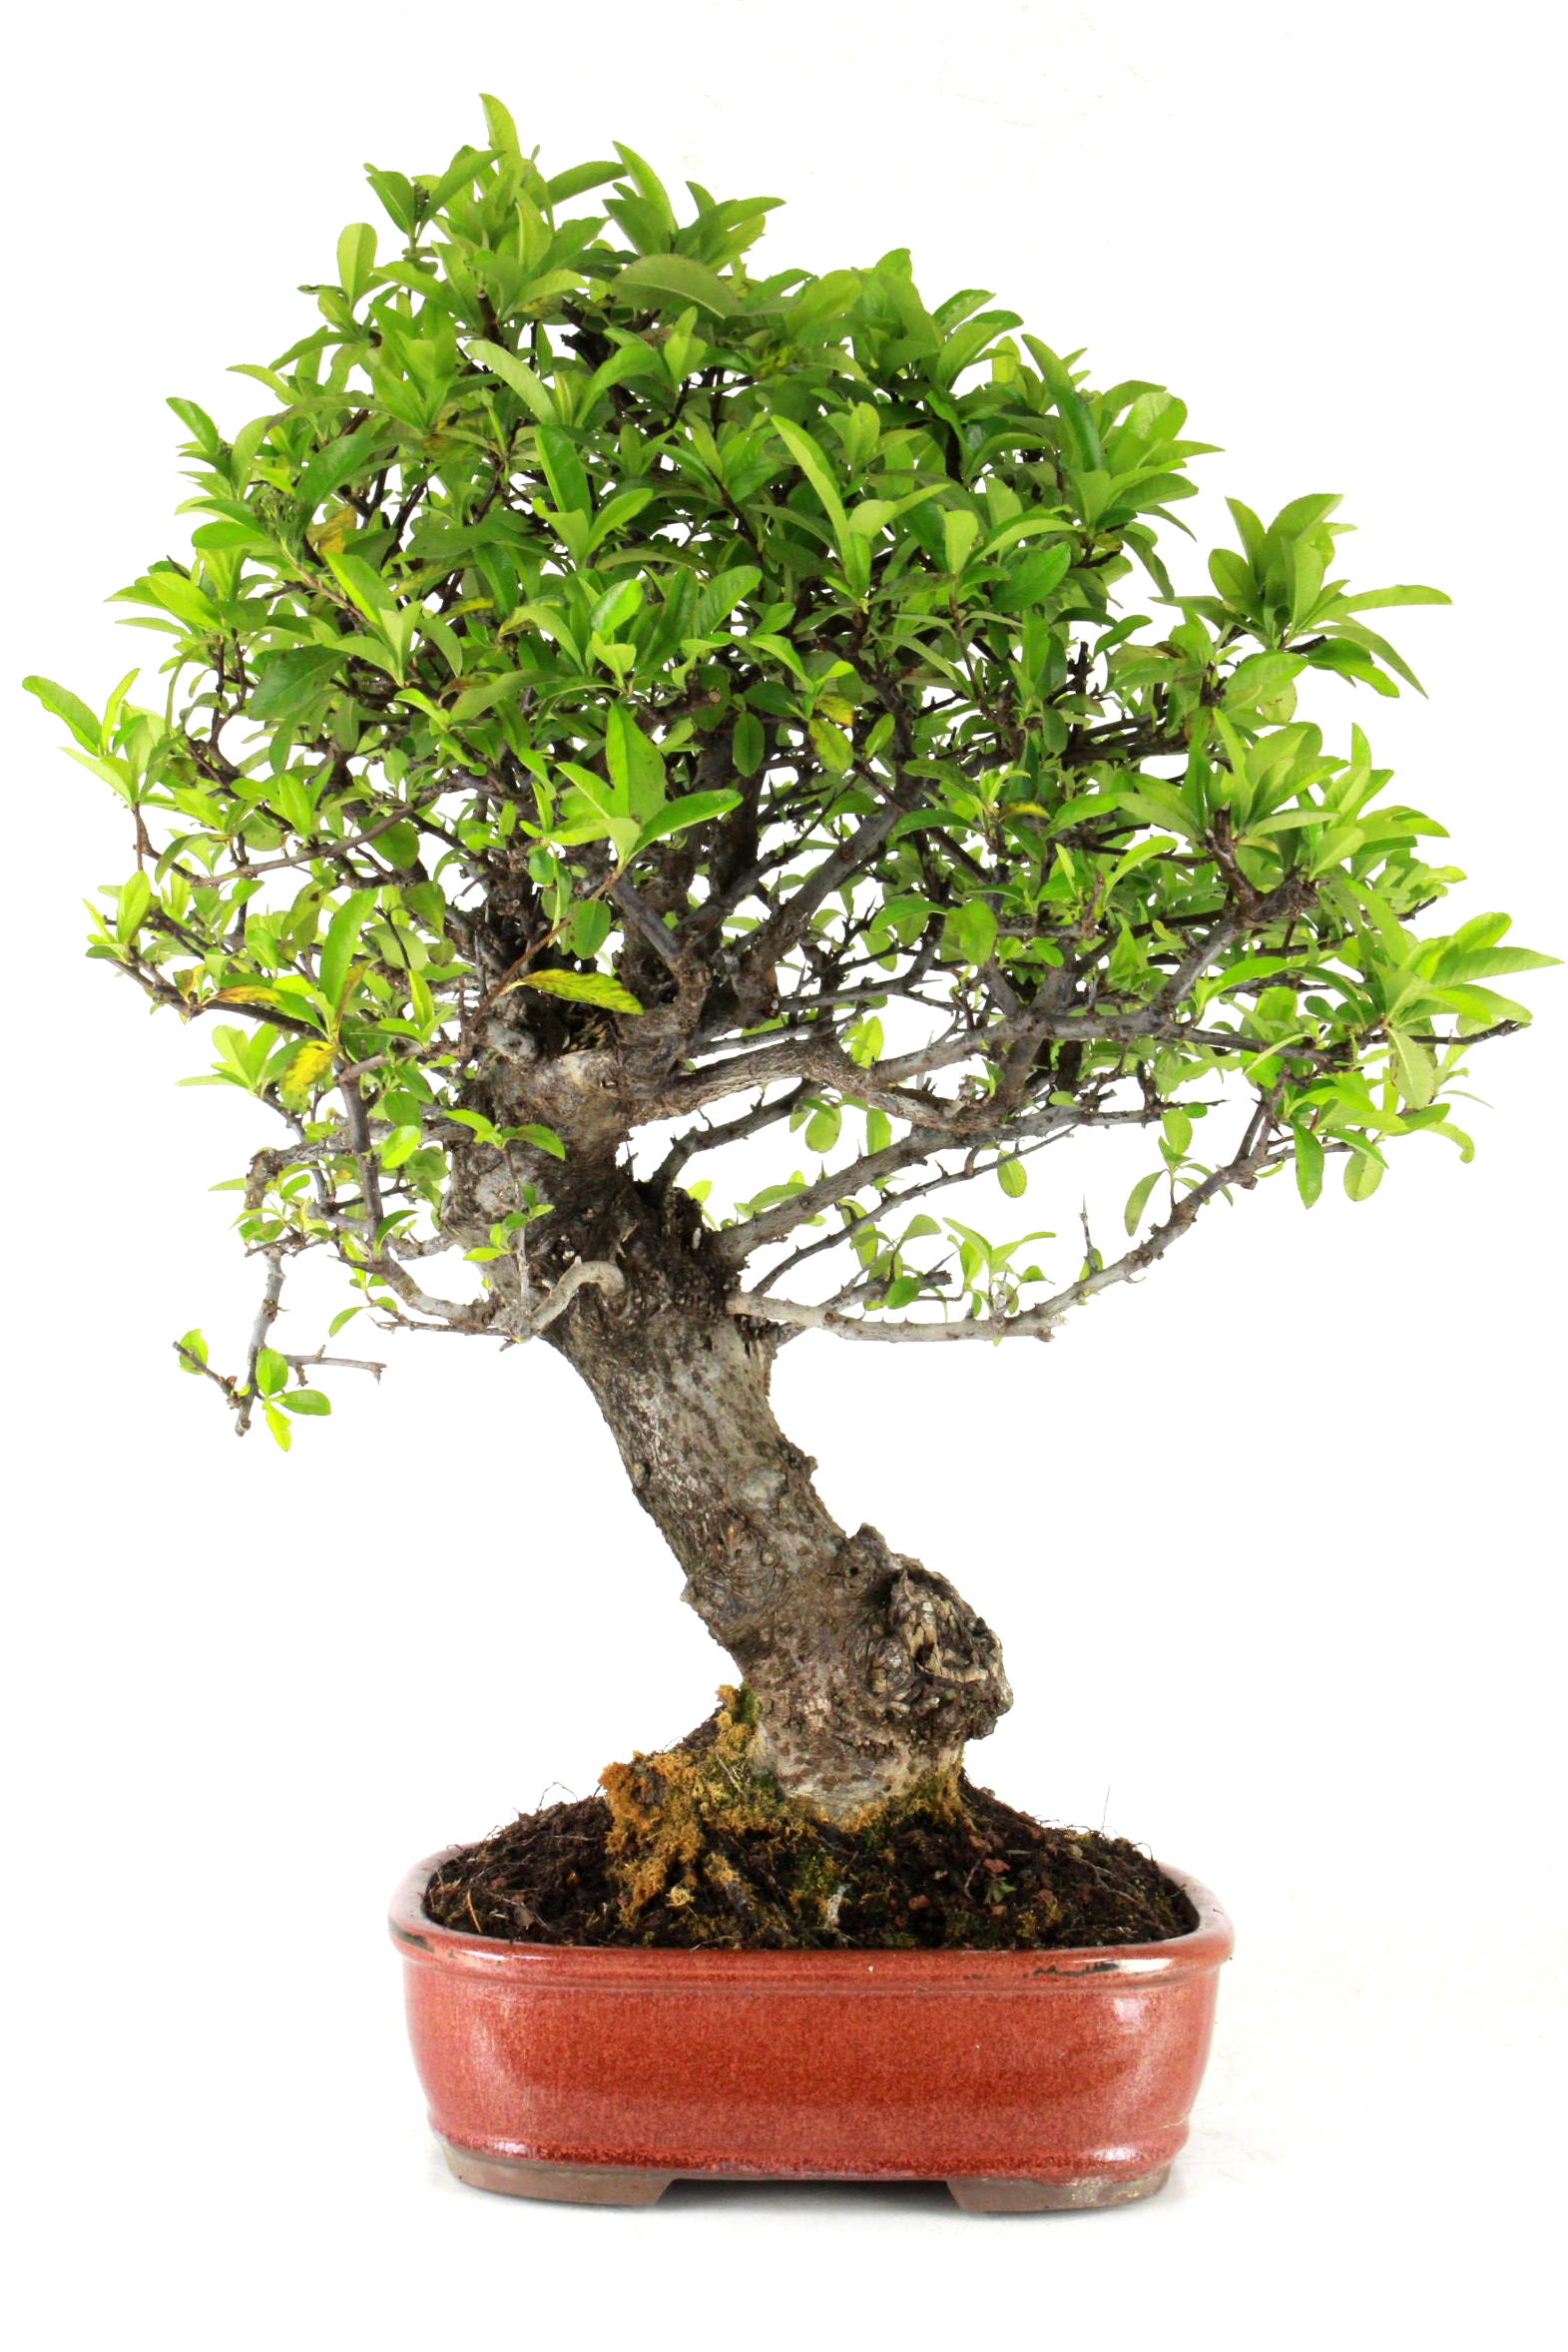 Feuerdorn bersicht onlineshop oyaki bonsai for Bonsai onlineshop